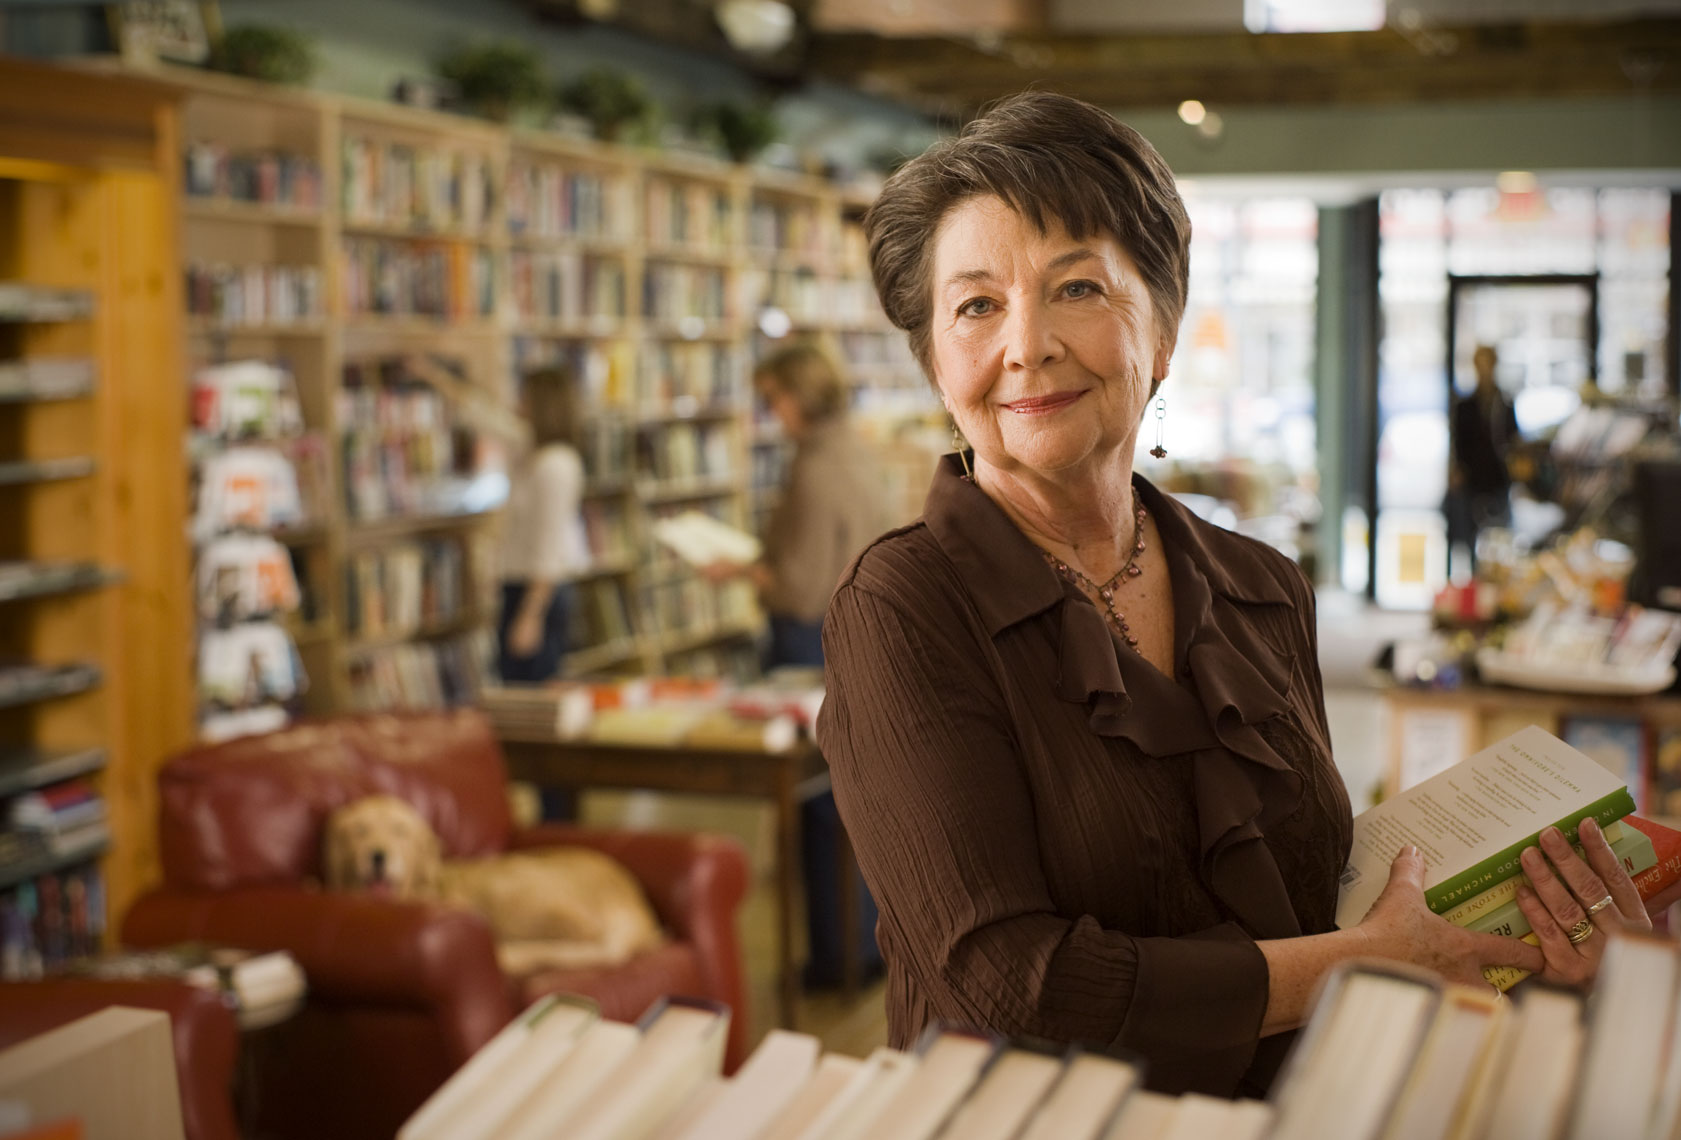 Commercial advertising portrait of a woman working in a  book store